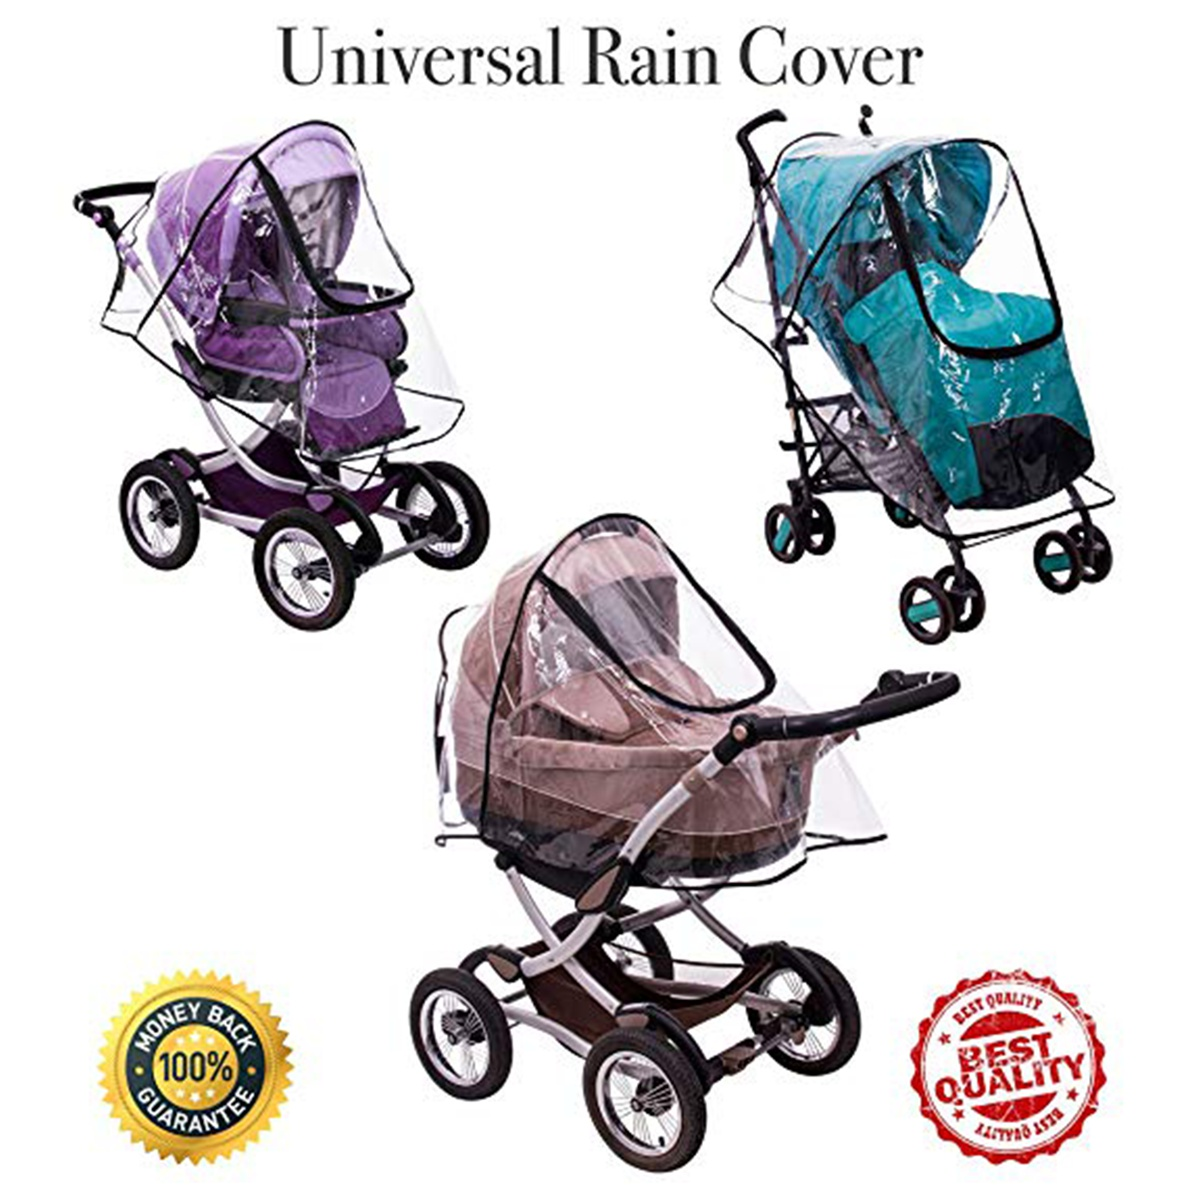 LivingBasics® Baby Stroller Rain Cover with Shield Weather Shield